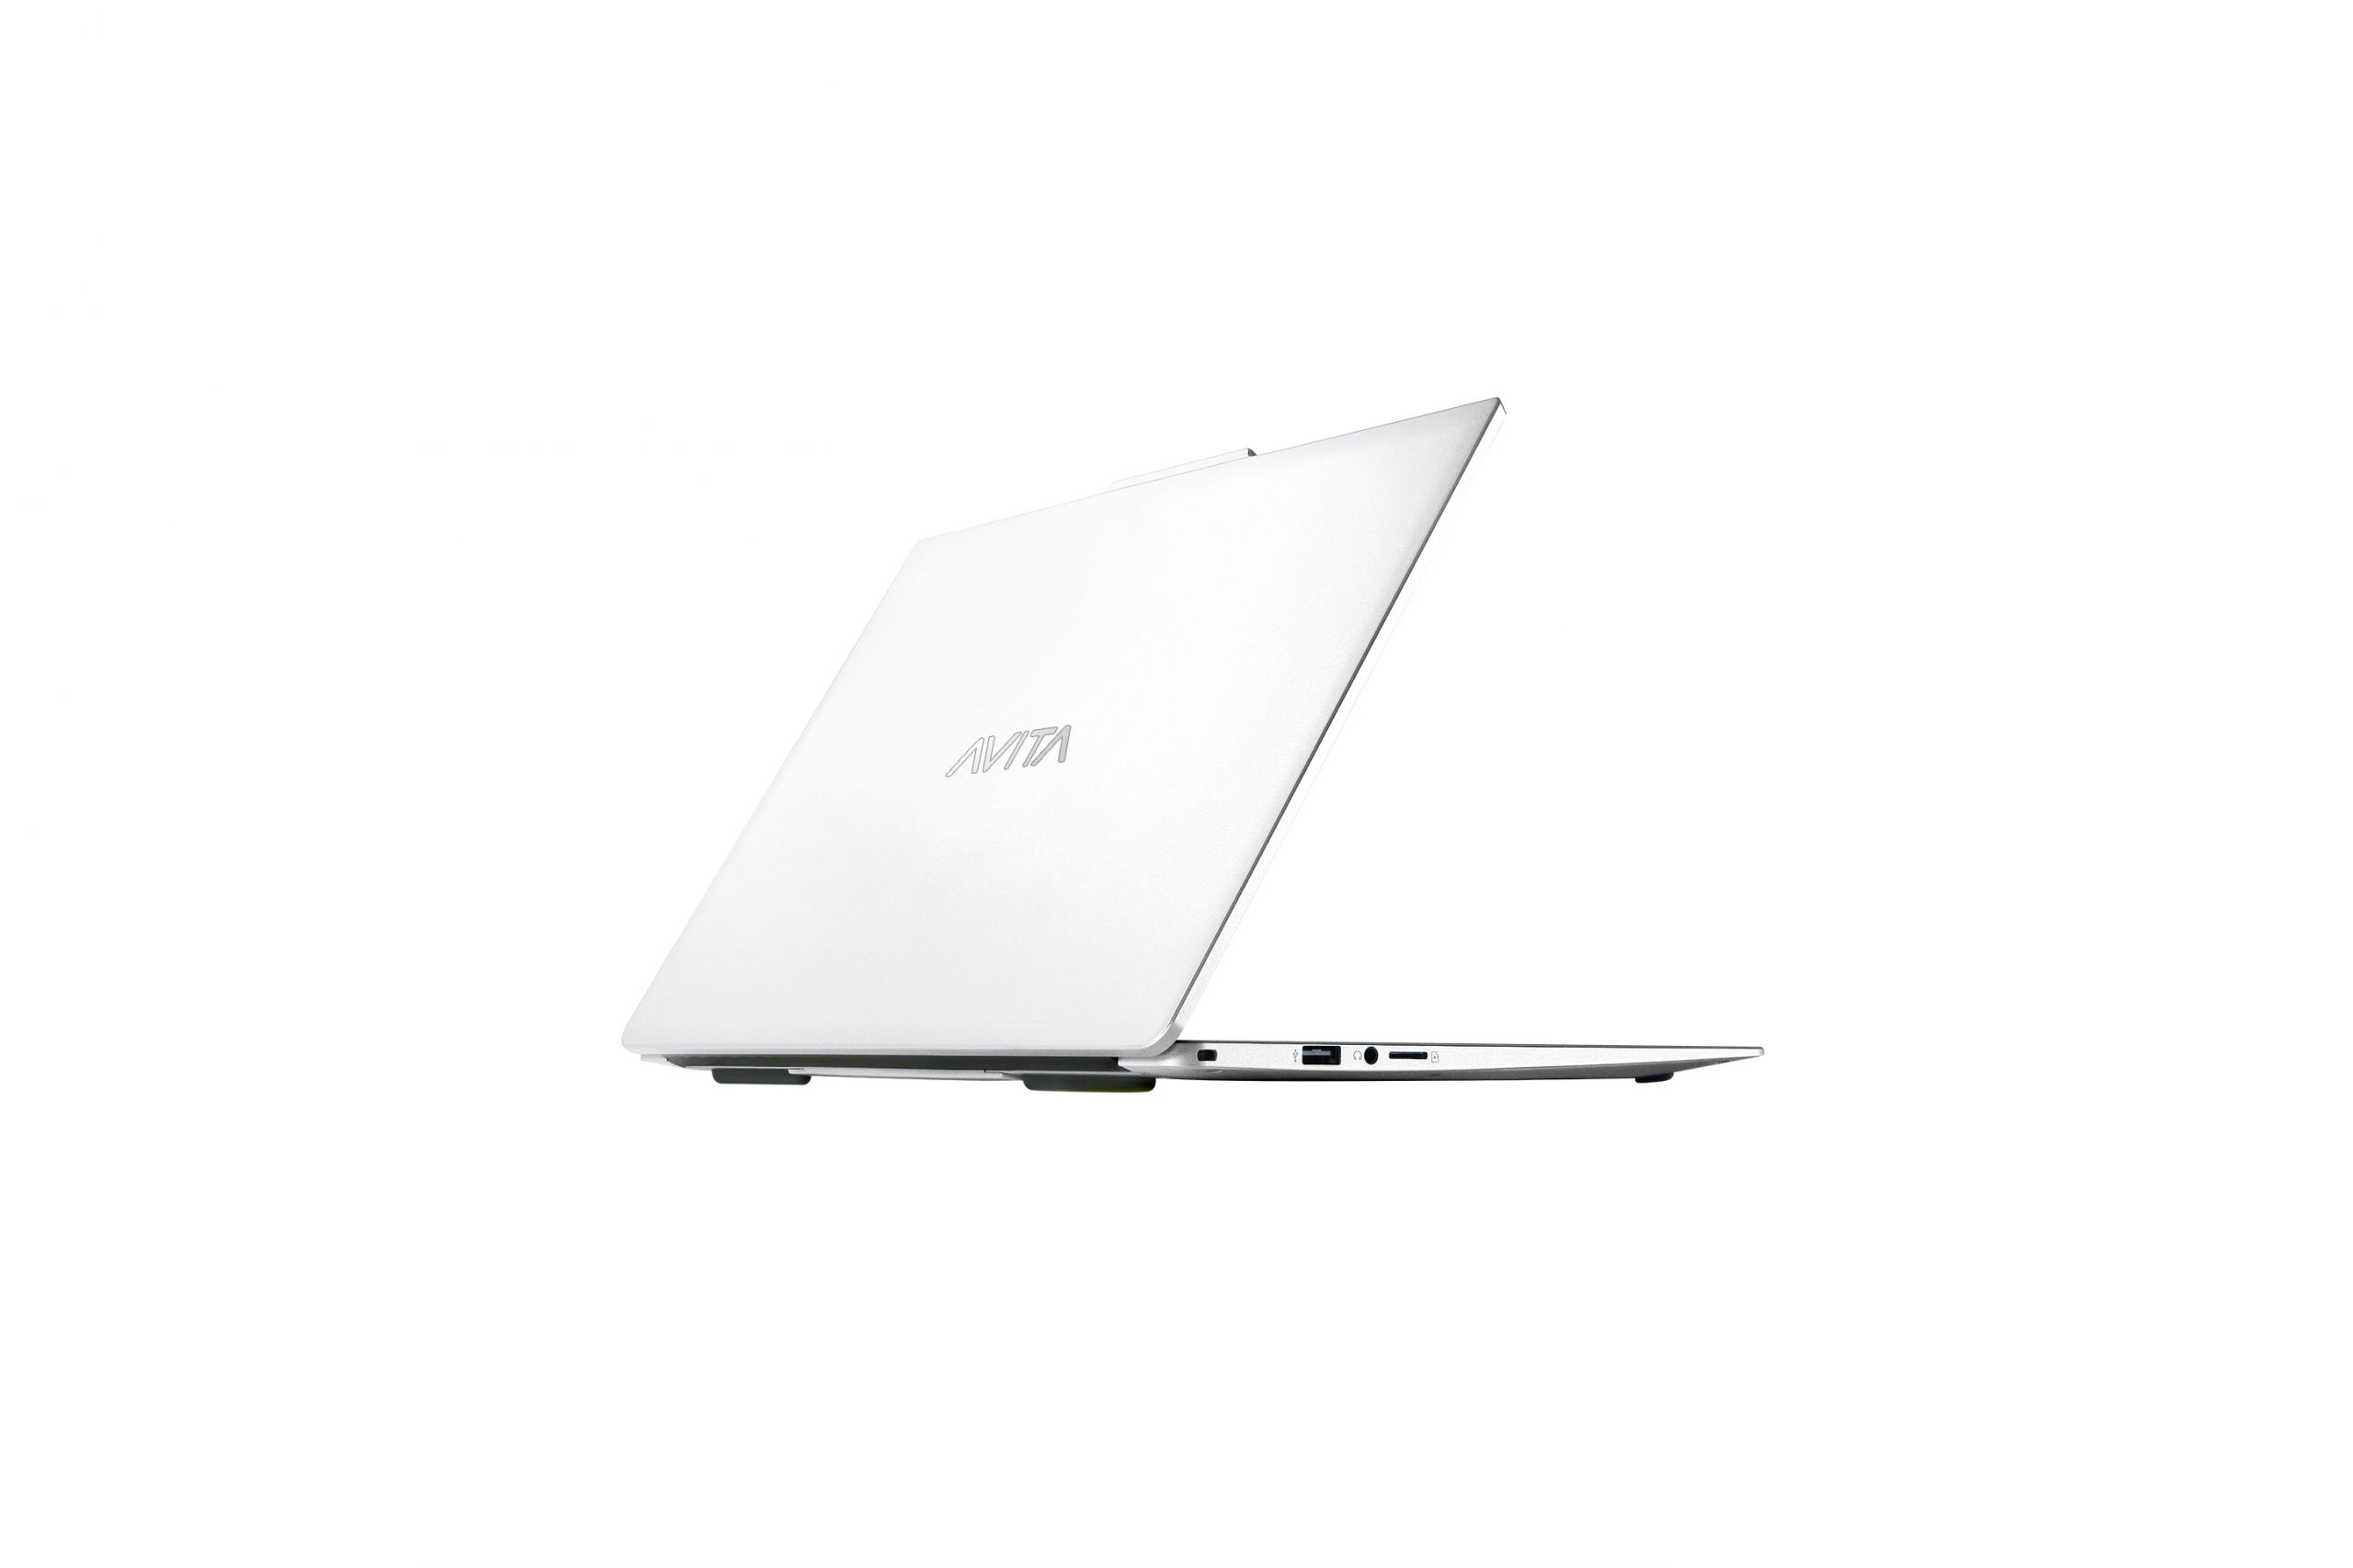 https://t2qwifi.com/wp-content/uploads/2020/07/avita_laptop_2020_angle2_0024_high_pearl-white-scaled.jpg